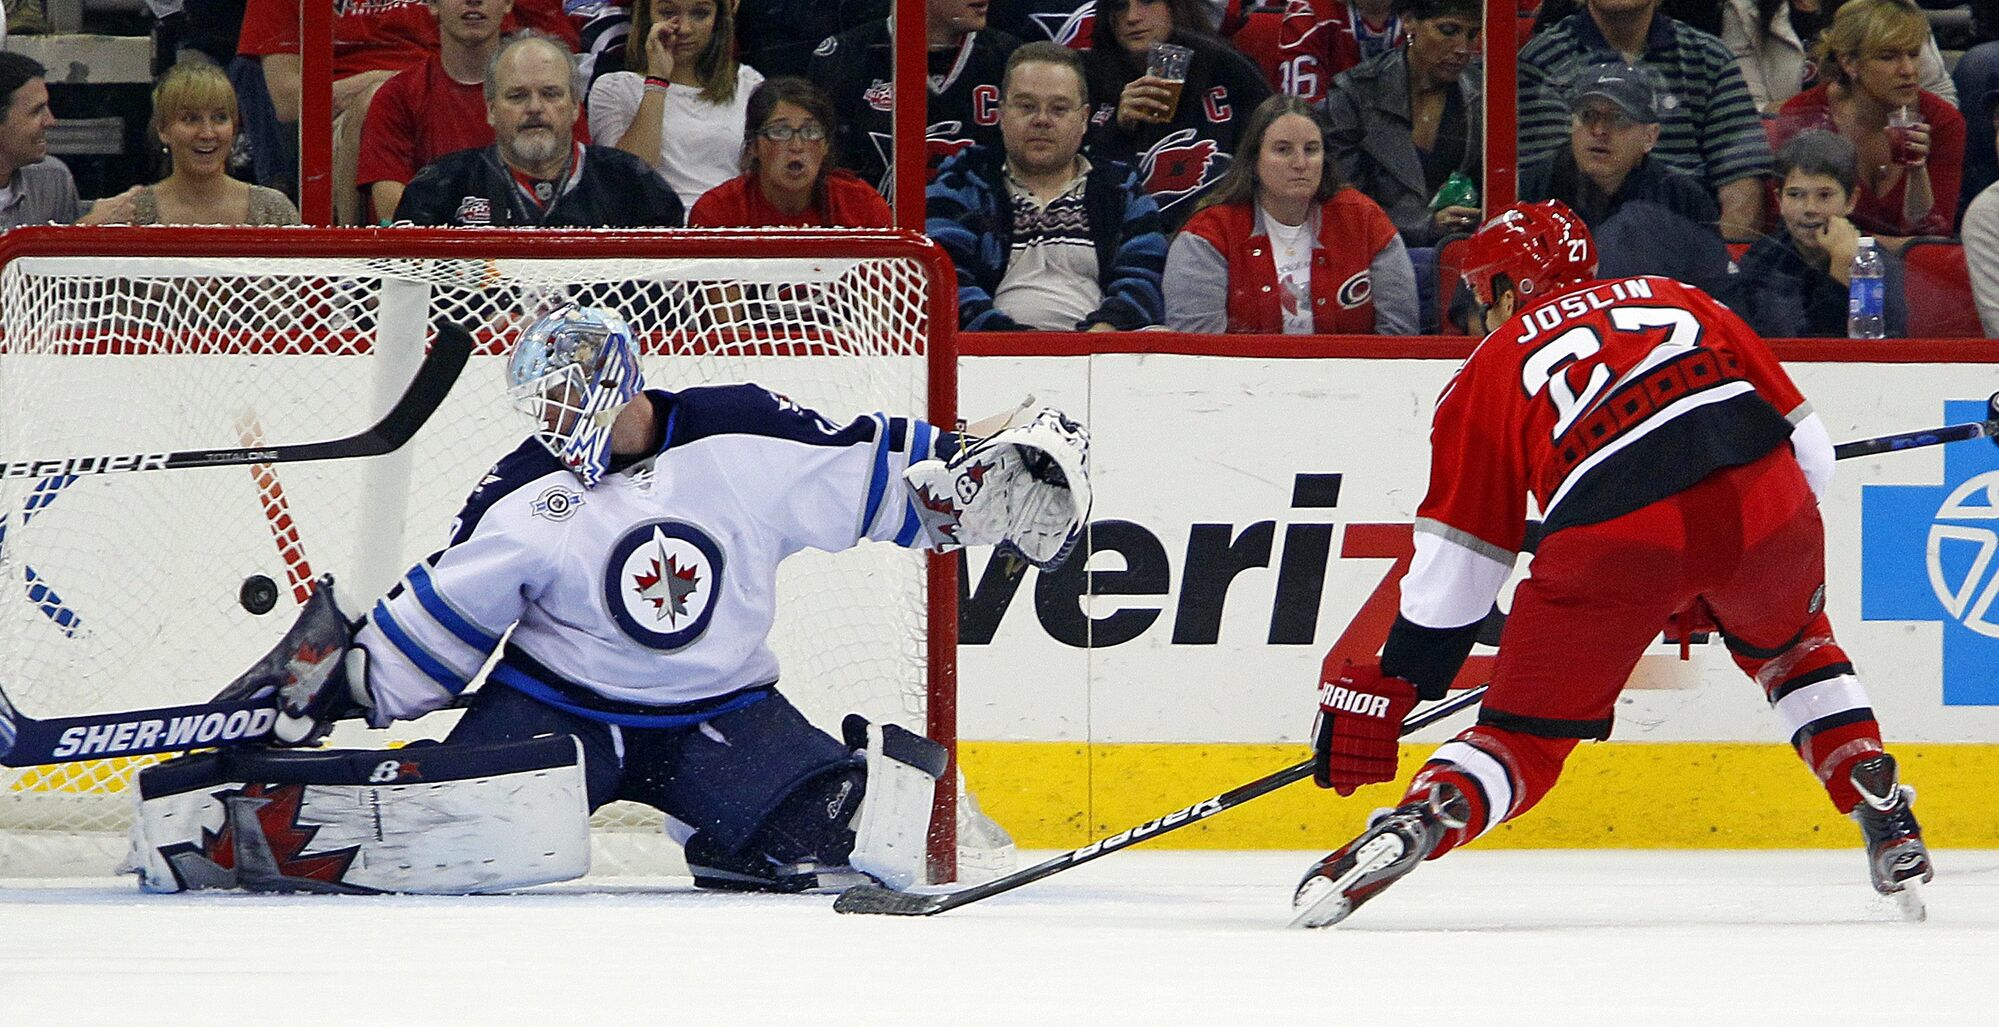 Carolina Hurricanes' Derek Joslin (27) shoots the puck past Winnipeg Jets goalie Chris Mason (50) during the first period of an NHL hockey game in Raleigh, N.C., on Friday.